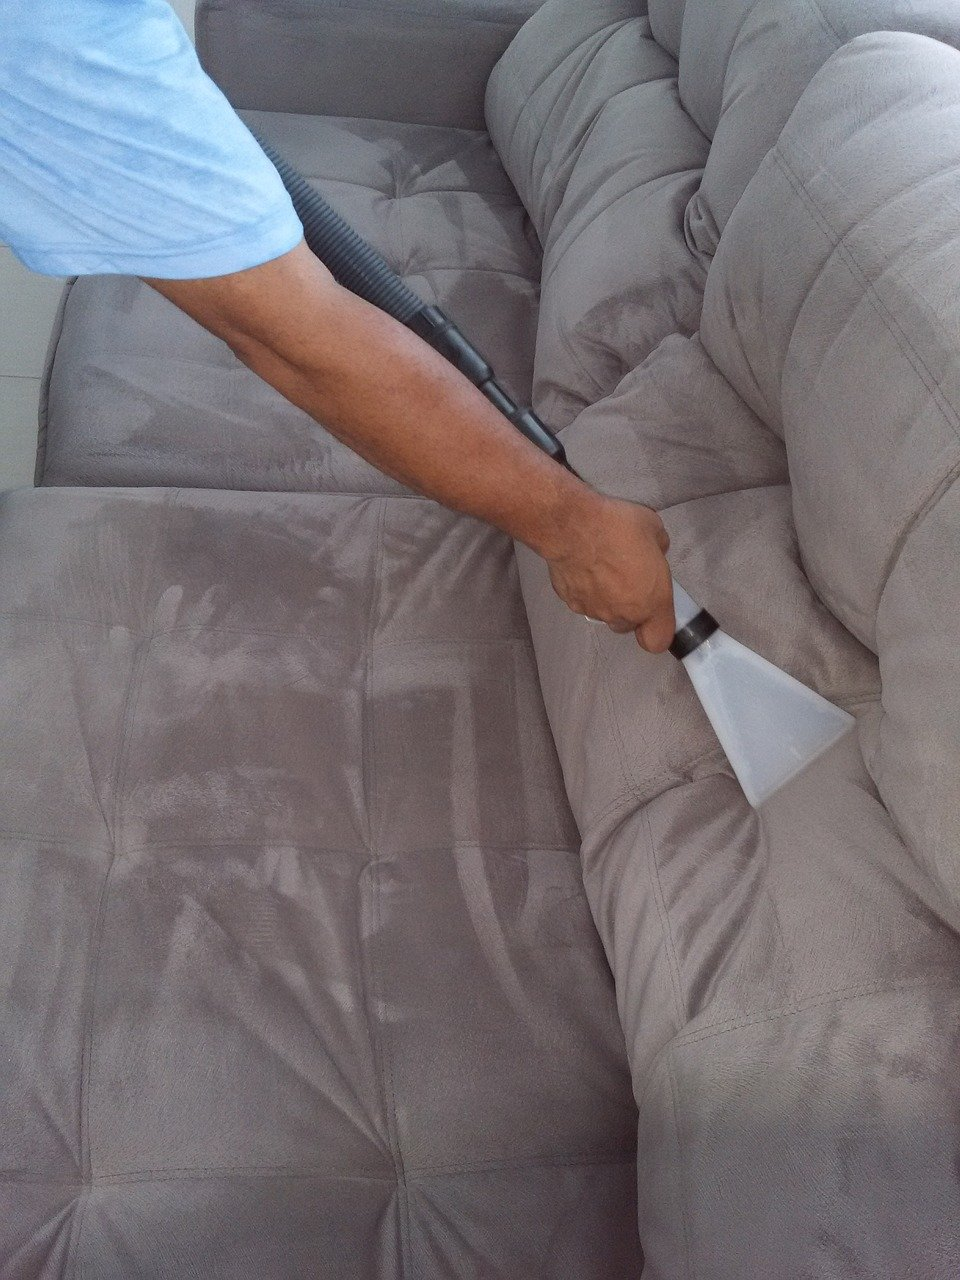 image - Furniture Cleaning, Drying, And Disinfection After Water Damage — What You Should Know